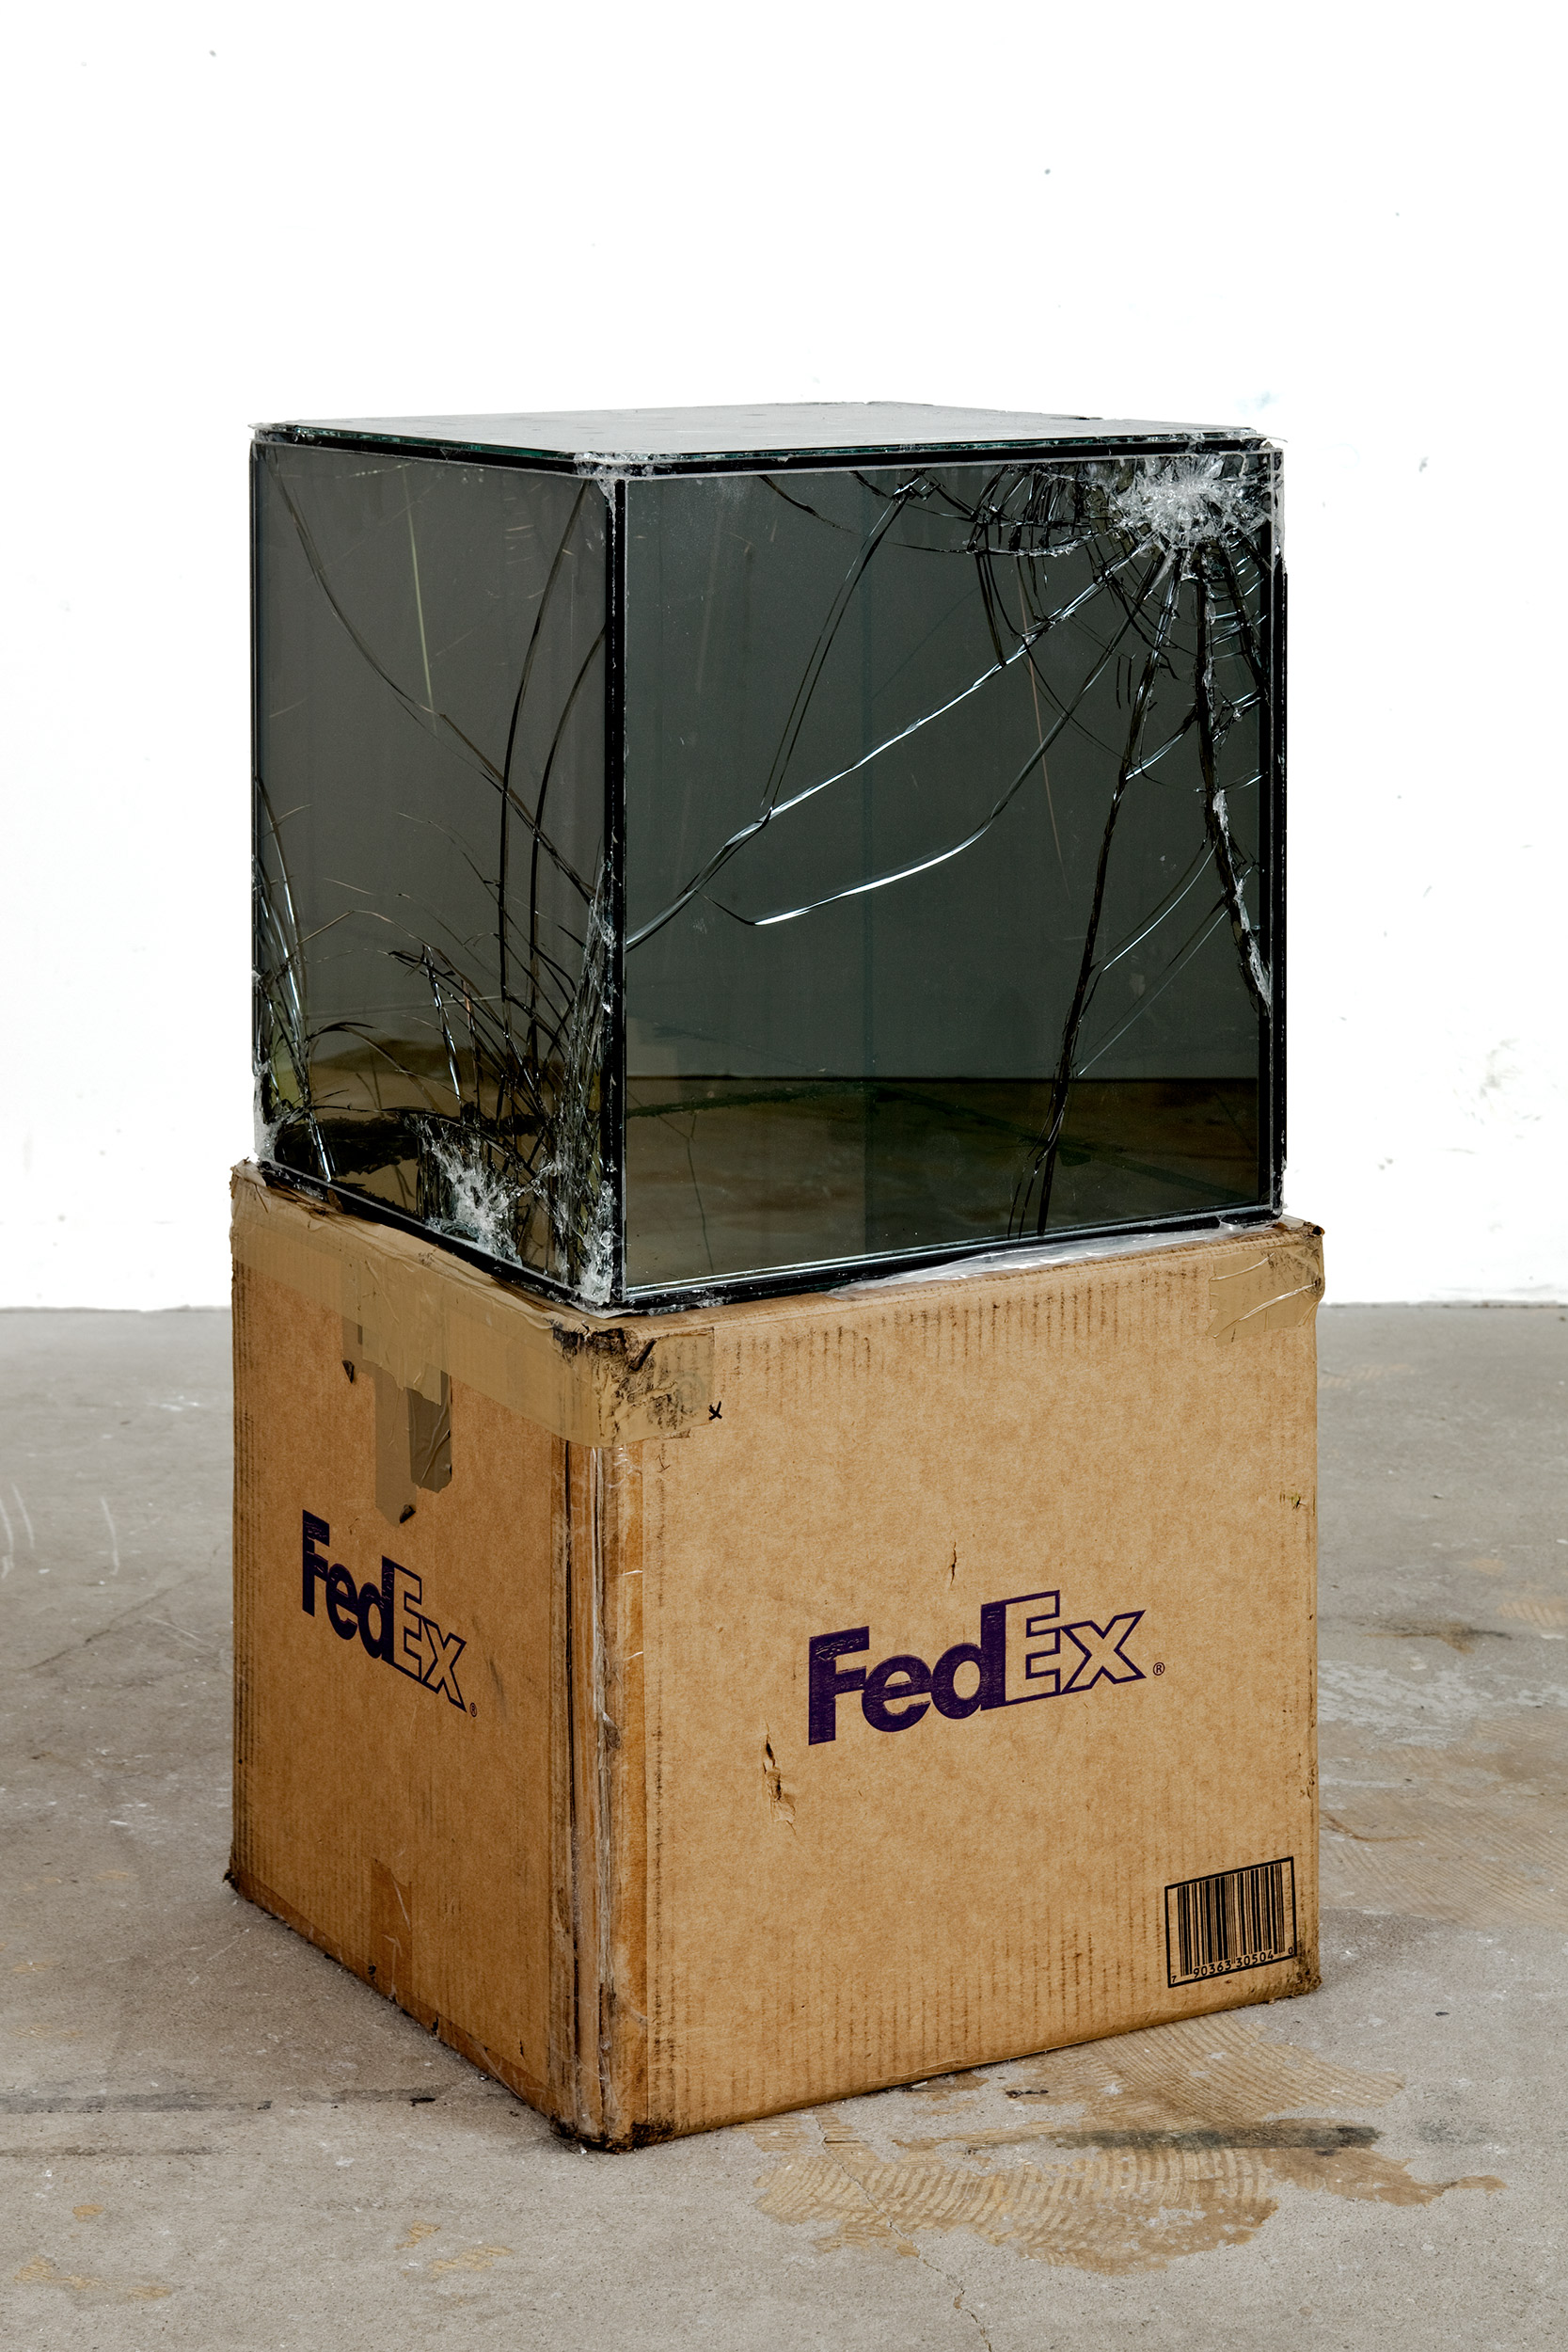 FedEx® Kraft Box  © 2005 FEDEX 330504 10/05 SSCC, Priority Overnight, Los Angeles–Miami trk#865344981314, October 29–30, 2008, Priority Overnight, Miami–Los Angeles trk#861049125089, November 17–18, 2008, Priority Overnight, Los Angeles-Miami Beach trk#860147611241, December 01–02, 2008, Priority Overnight, Miami–Los Angeles trk#867525901310, December 08–09, 2008, Priority Overnight, Los Angeles–Ann Arbor trk#867525901228, March 09–10, 2009, Standard Overnight, Ann Arbor–Los Angeles trk#868274625705, July 09–10, 2009, Standard Overnight, Los Angeles–San Francisco trk#870069766460, August 27–28, 2009, Standard Overnight, San Francisco–Los Angeles trk#870342520112, November 12–13, 2009    2008–   Laminated Mirropane, FedEx shipping box, accrued FedEx shipping and tracking labels, silicone, metal, tape  16 x 16 x 16 inches   FedEx Glass Works, 2007–